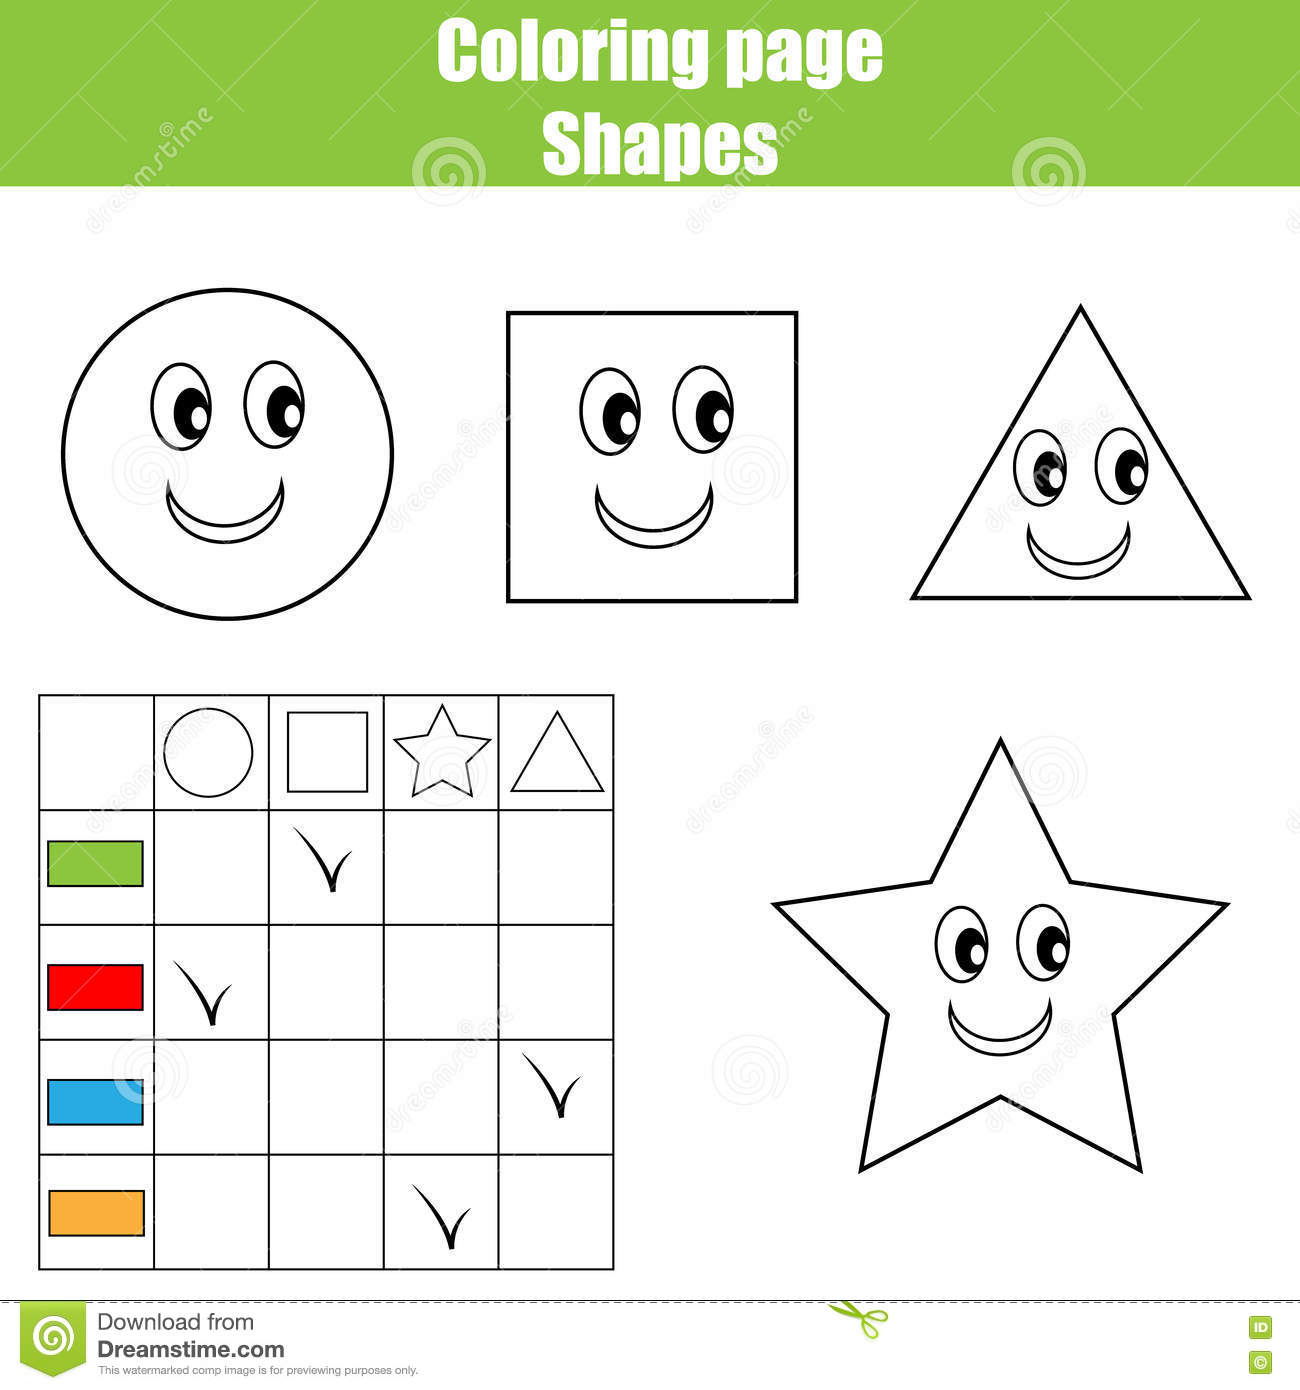 Coloring Page Practice Sheet Educational Children Game Kids Activity Printable Worksheet